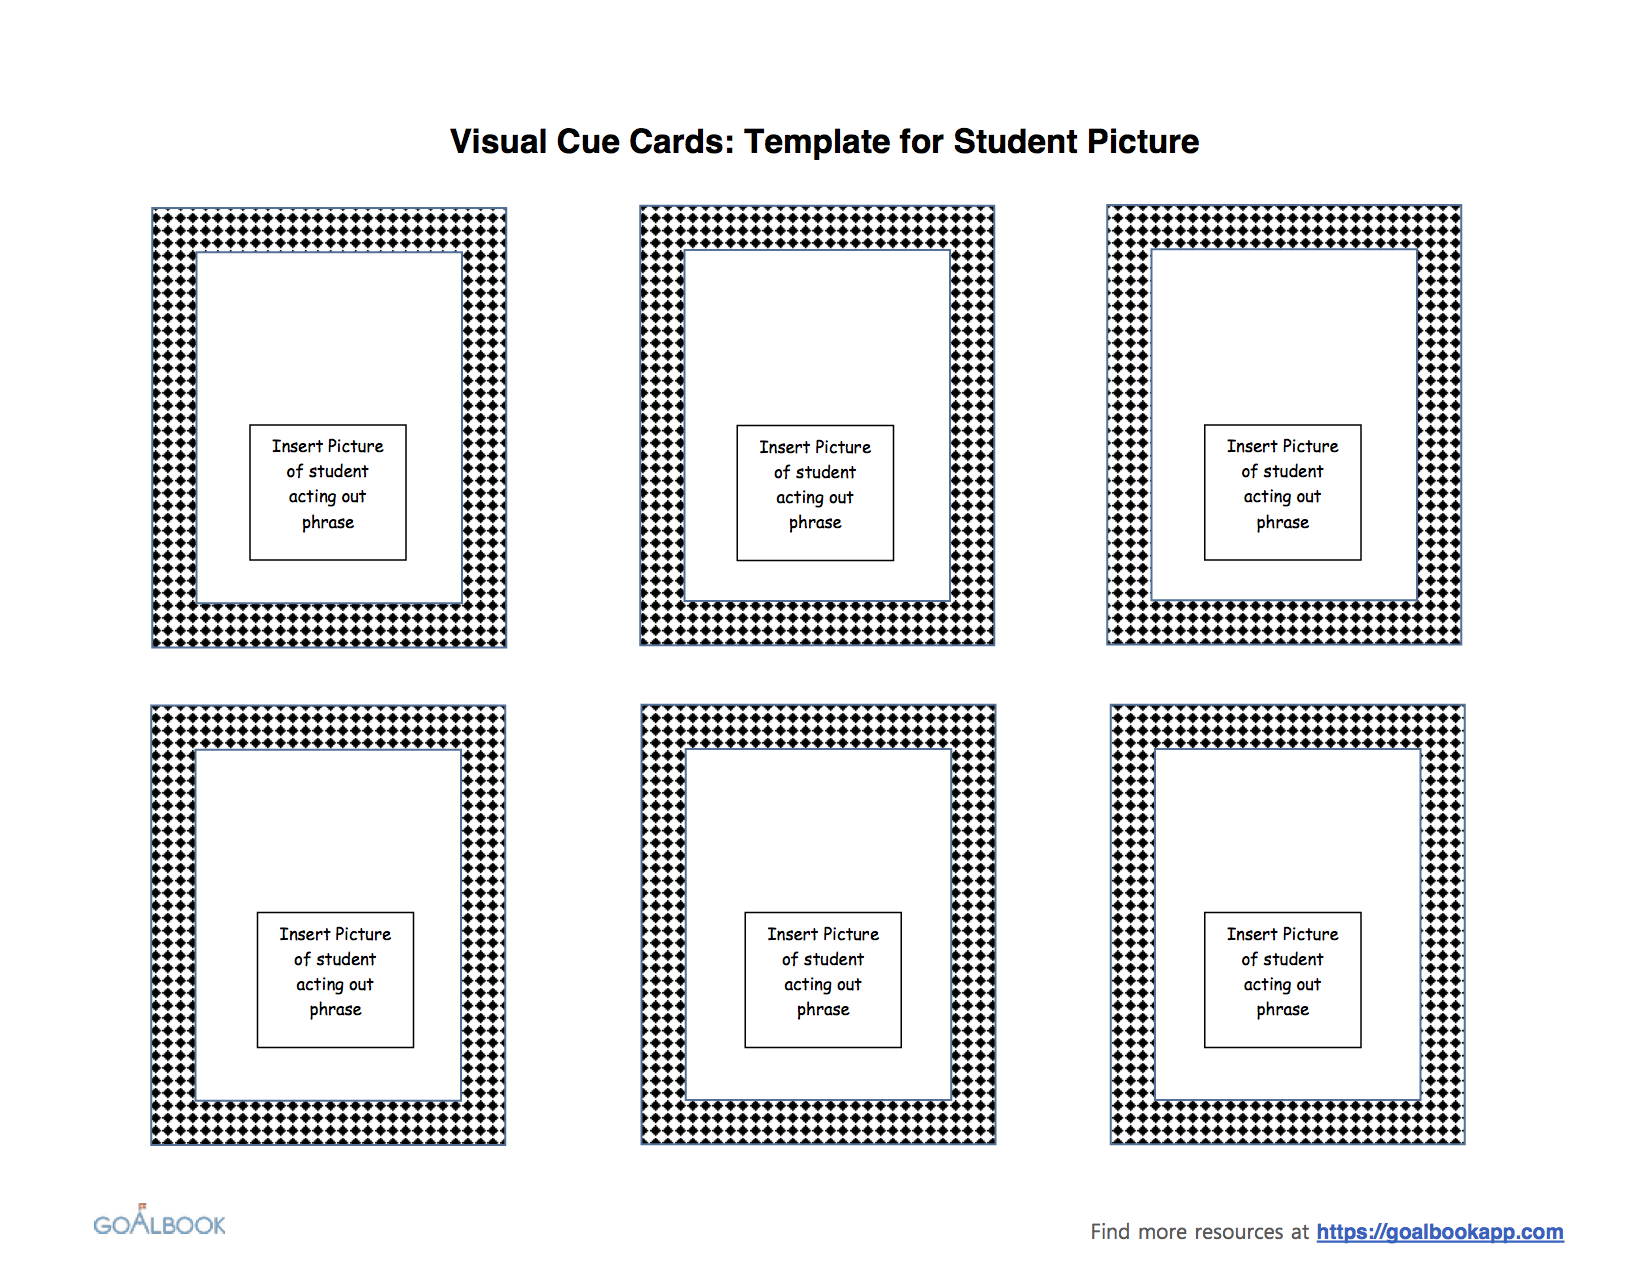 Blank Visual Cue Cards